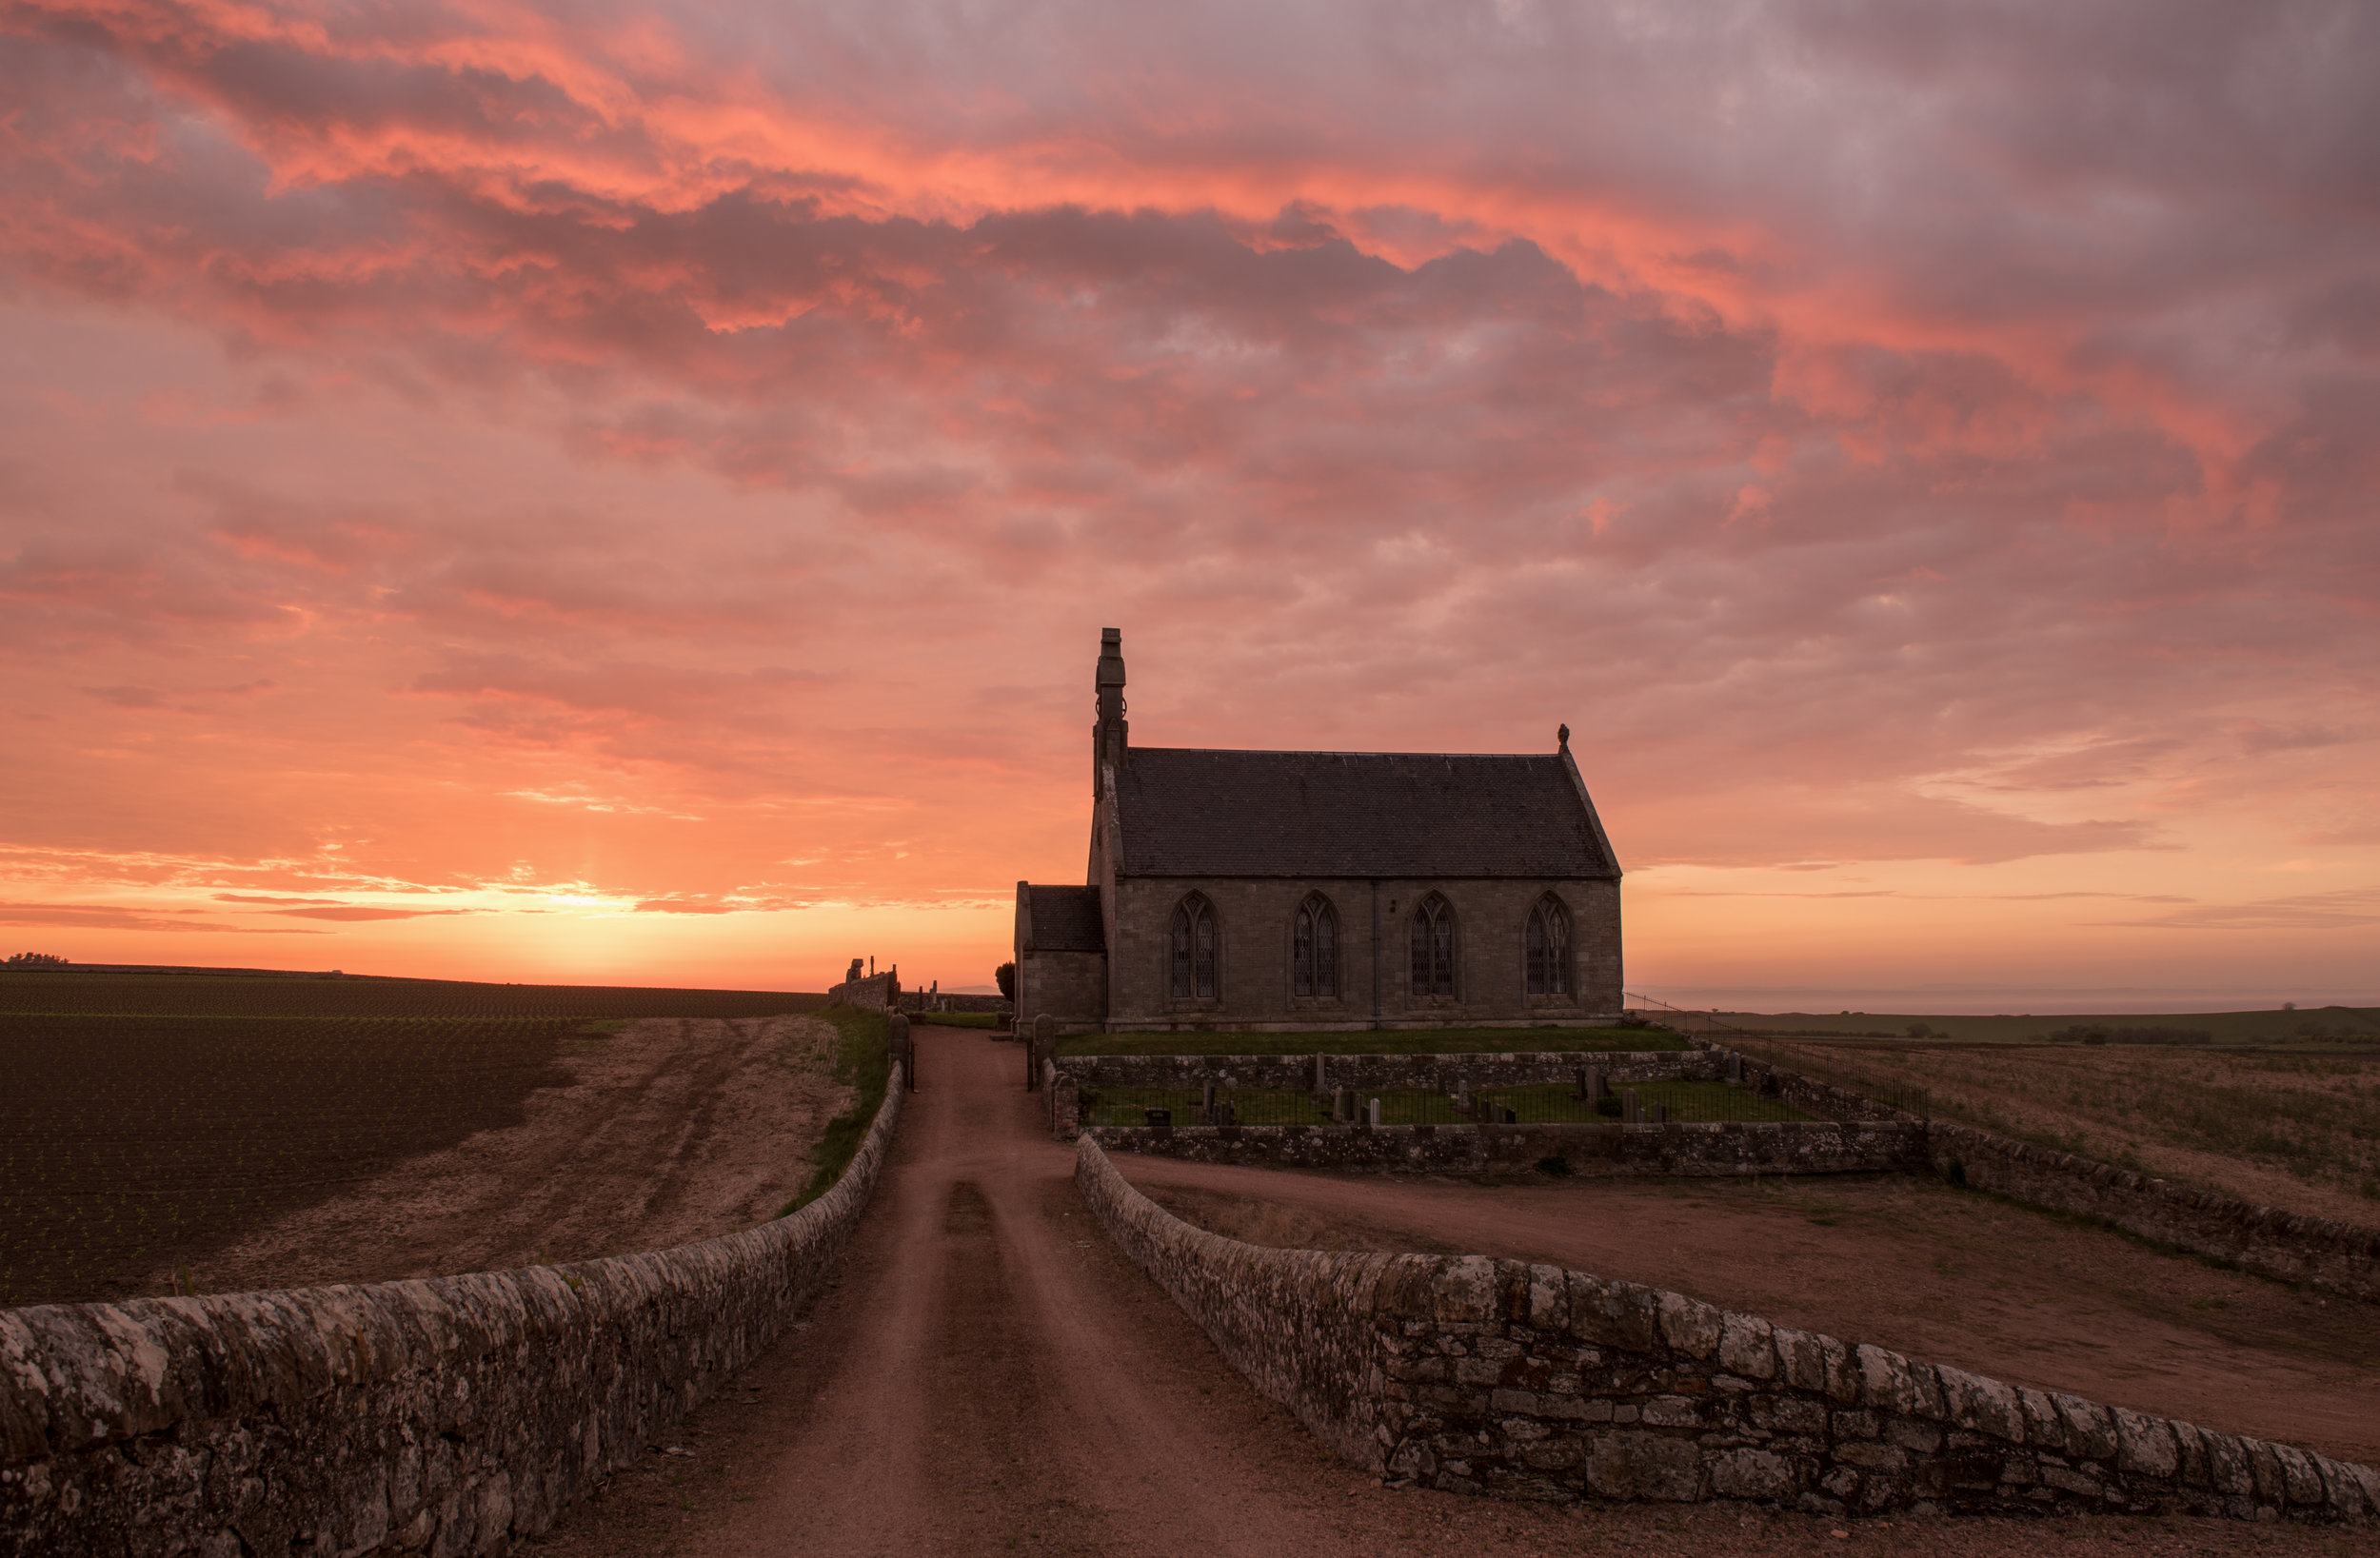 Sunset at Boarhills Church by Katherine Fotheringham